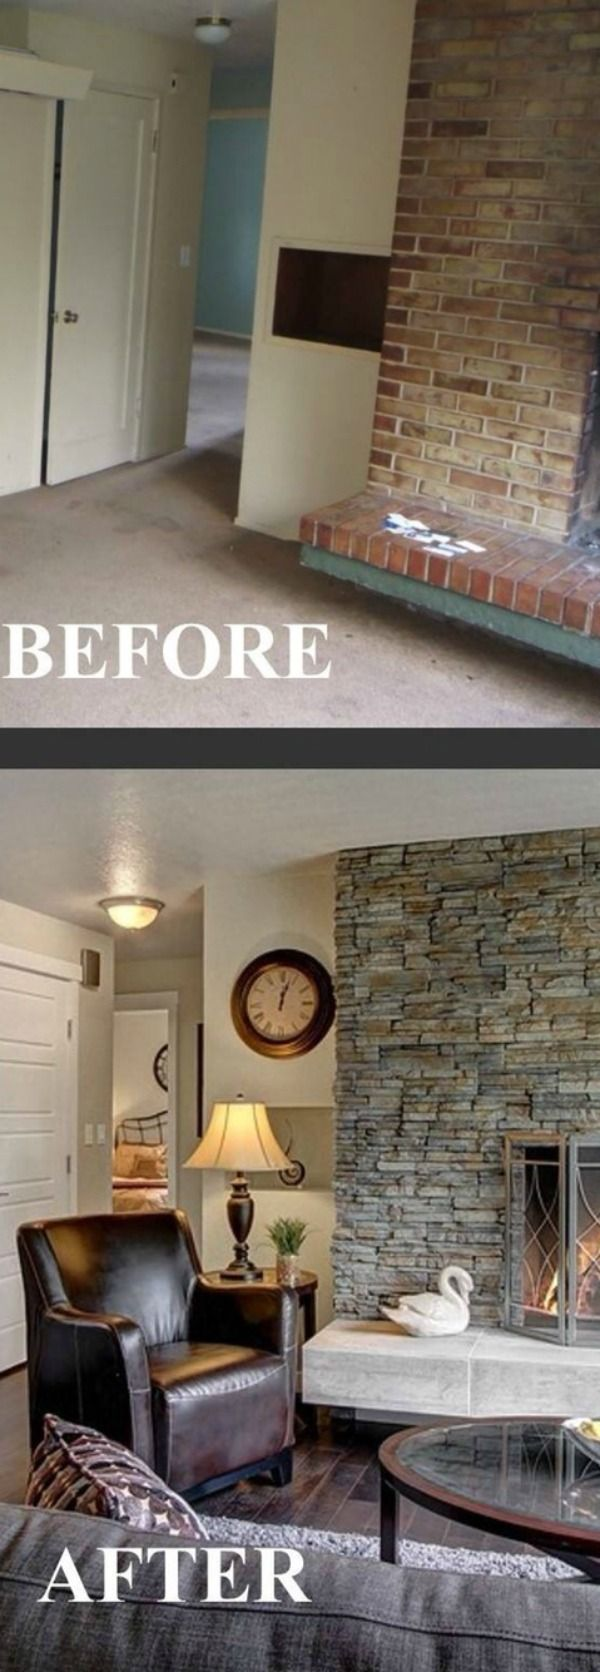 Have you been considering remodeling your living room? Check out these before and after shots of living room remodeling | lovelyspaces.com